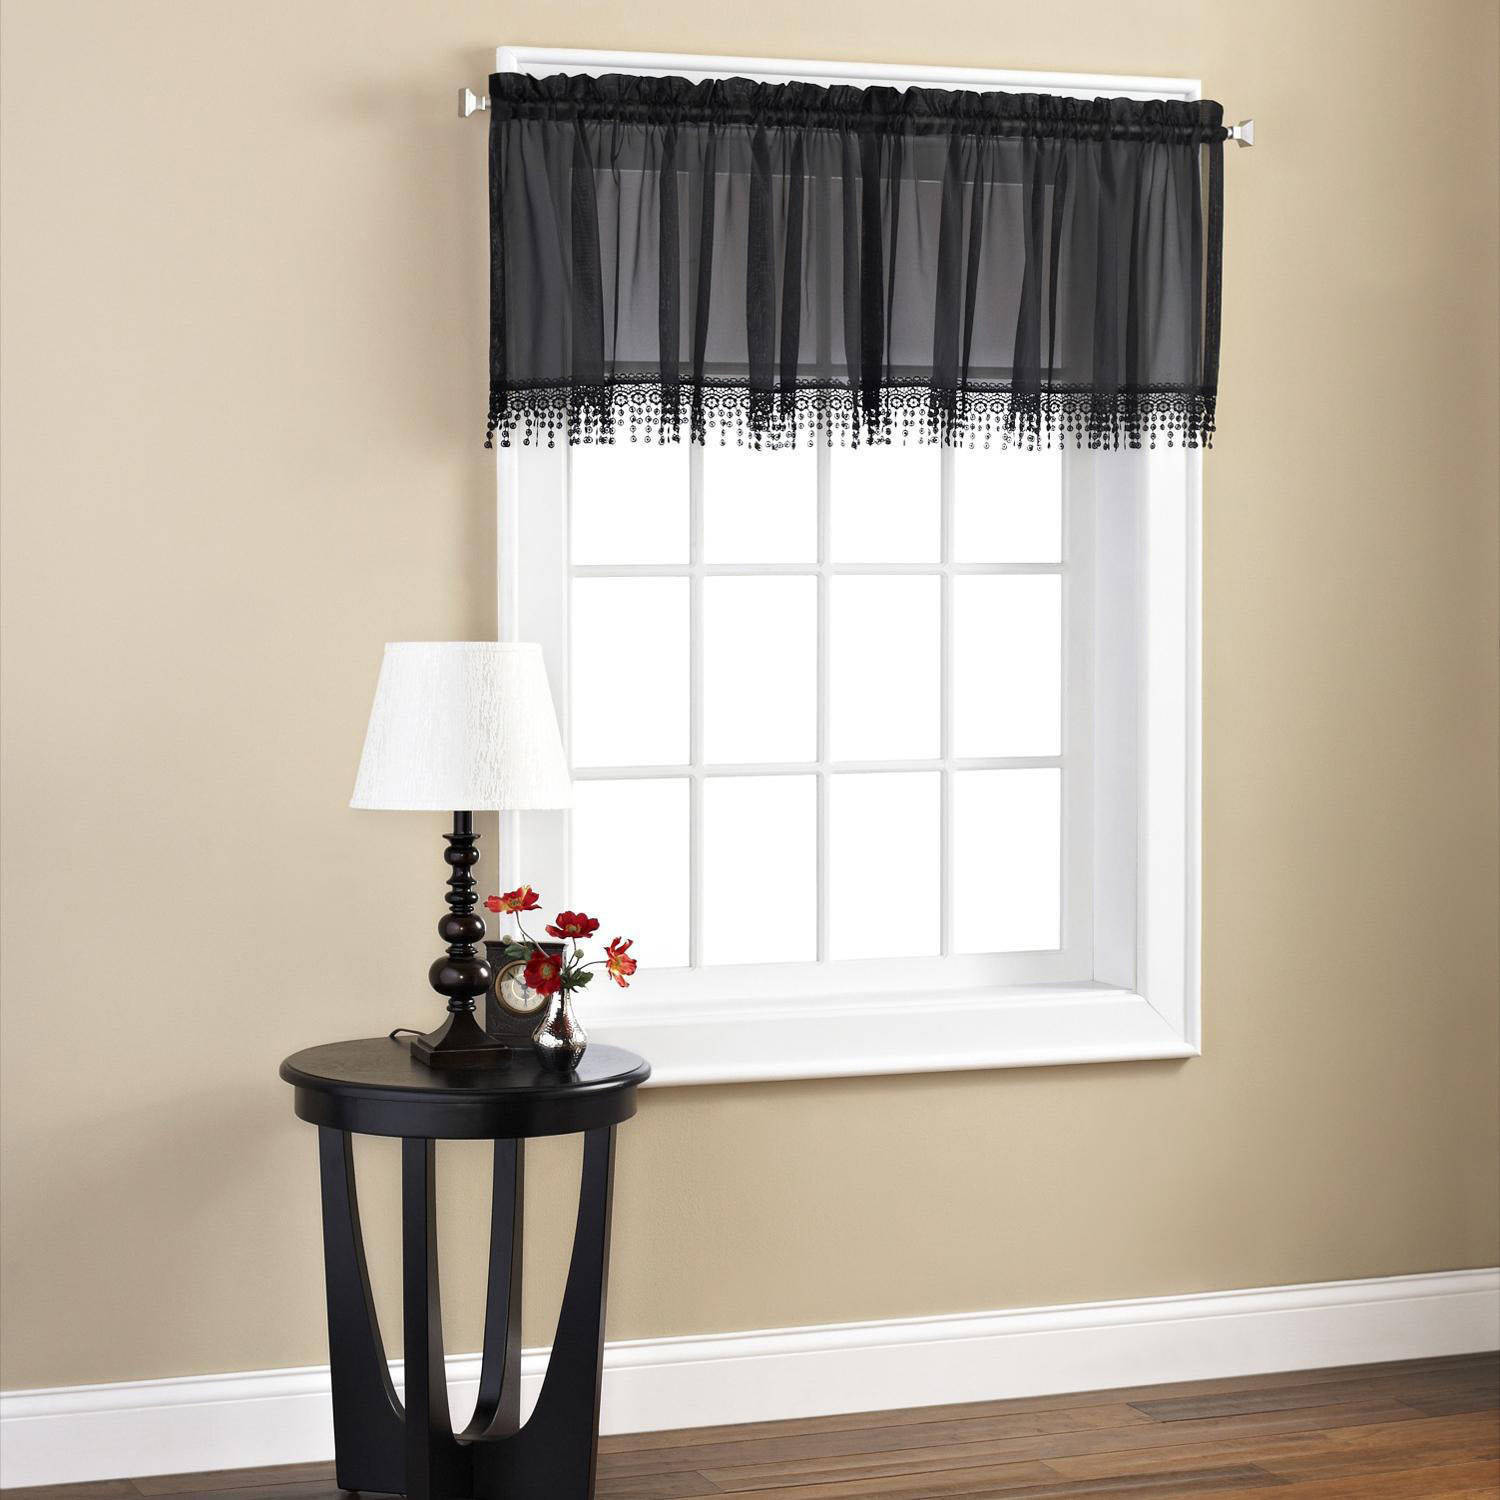 penneys valances window waterfall living beautiful decor jcpenney for and curtains beige using room sears lovely bedroom valance curtain brown